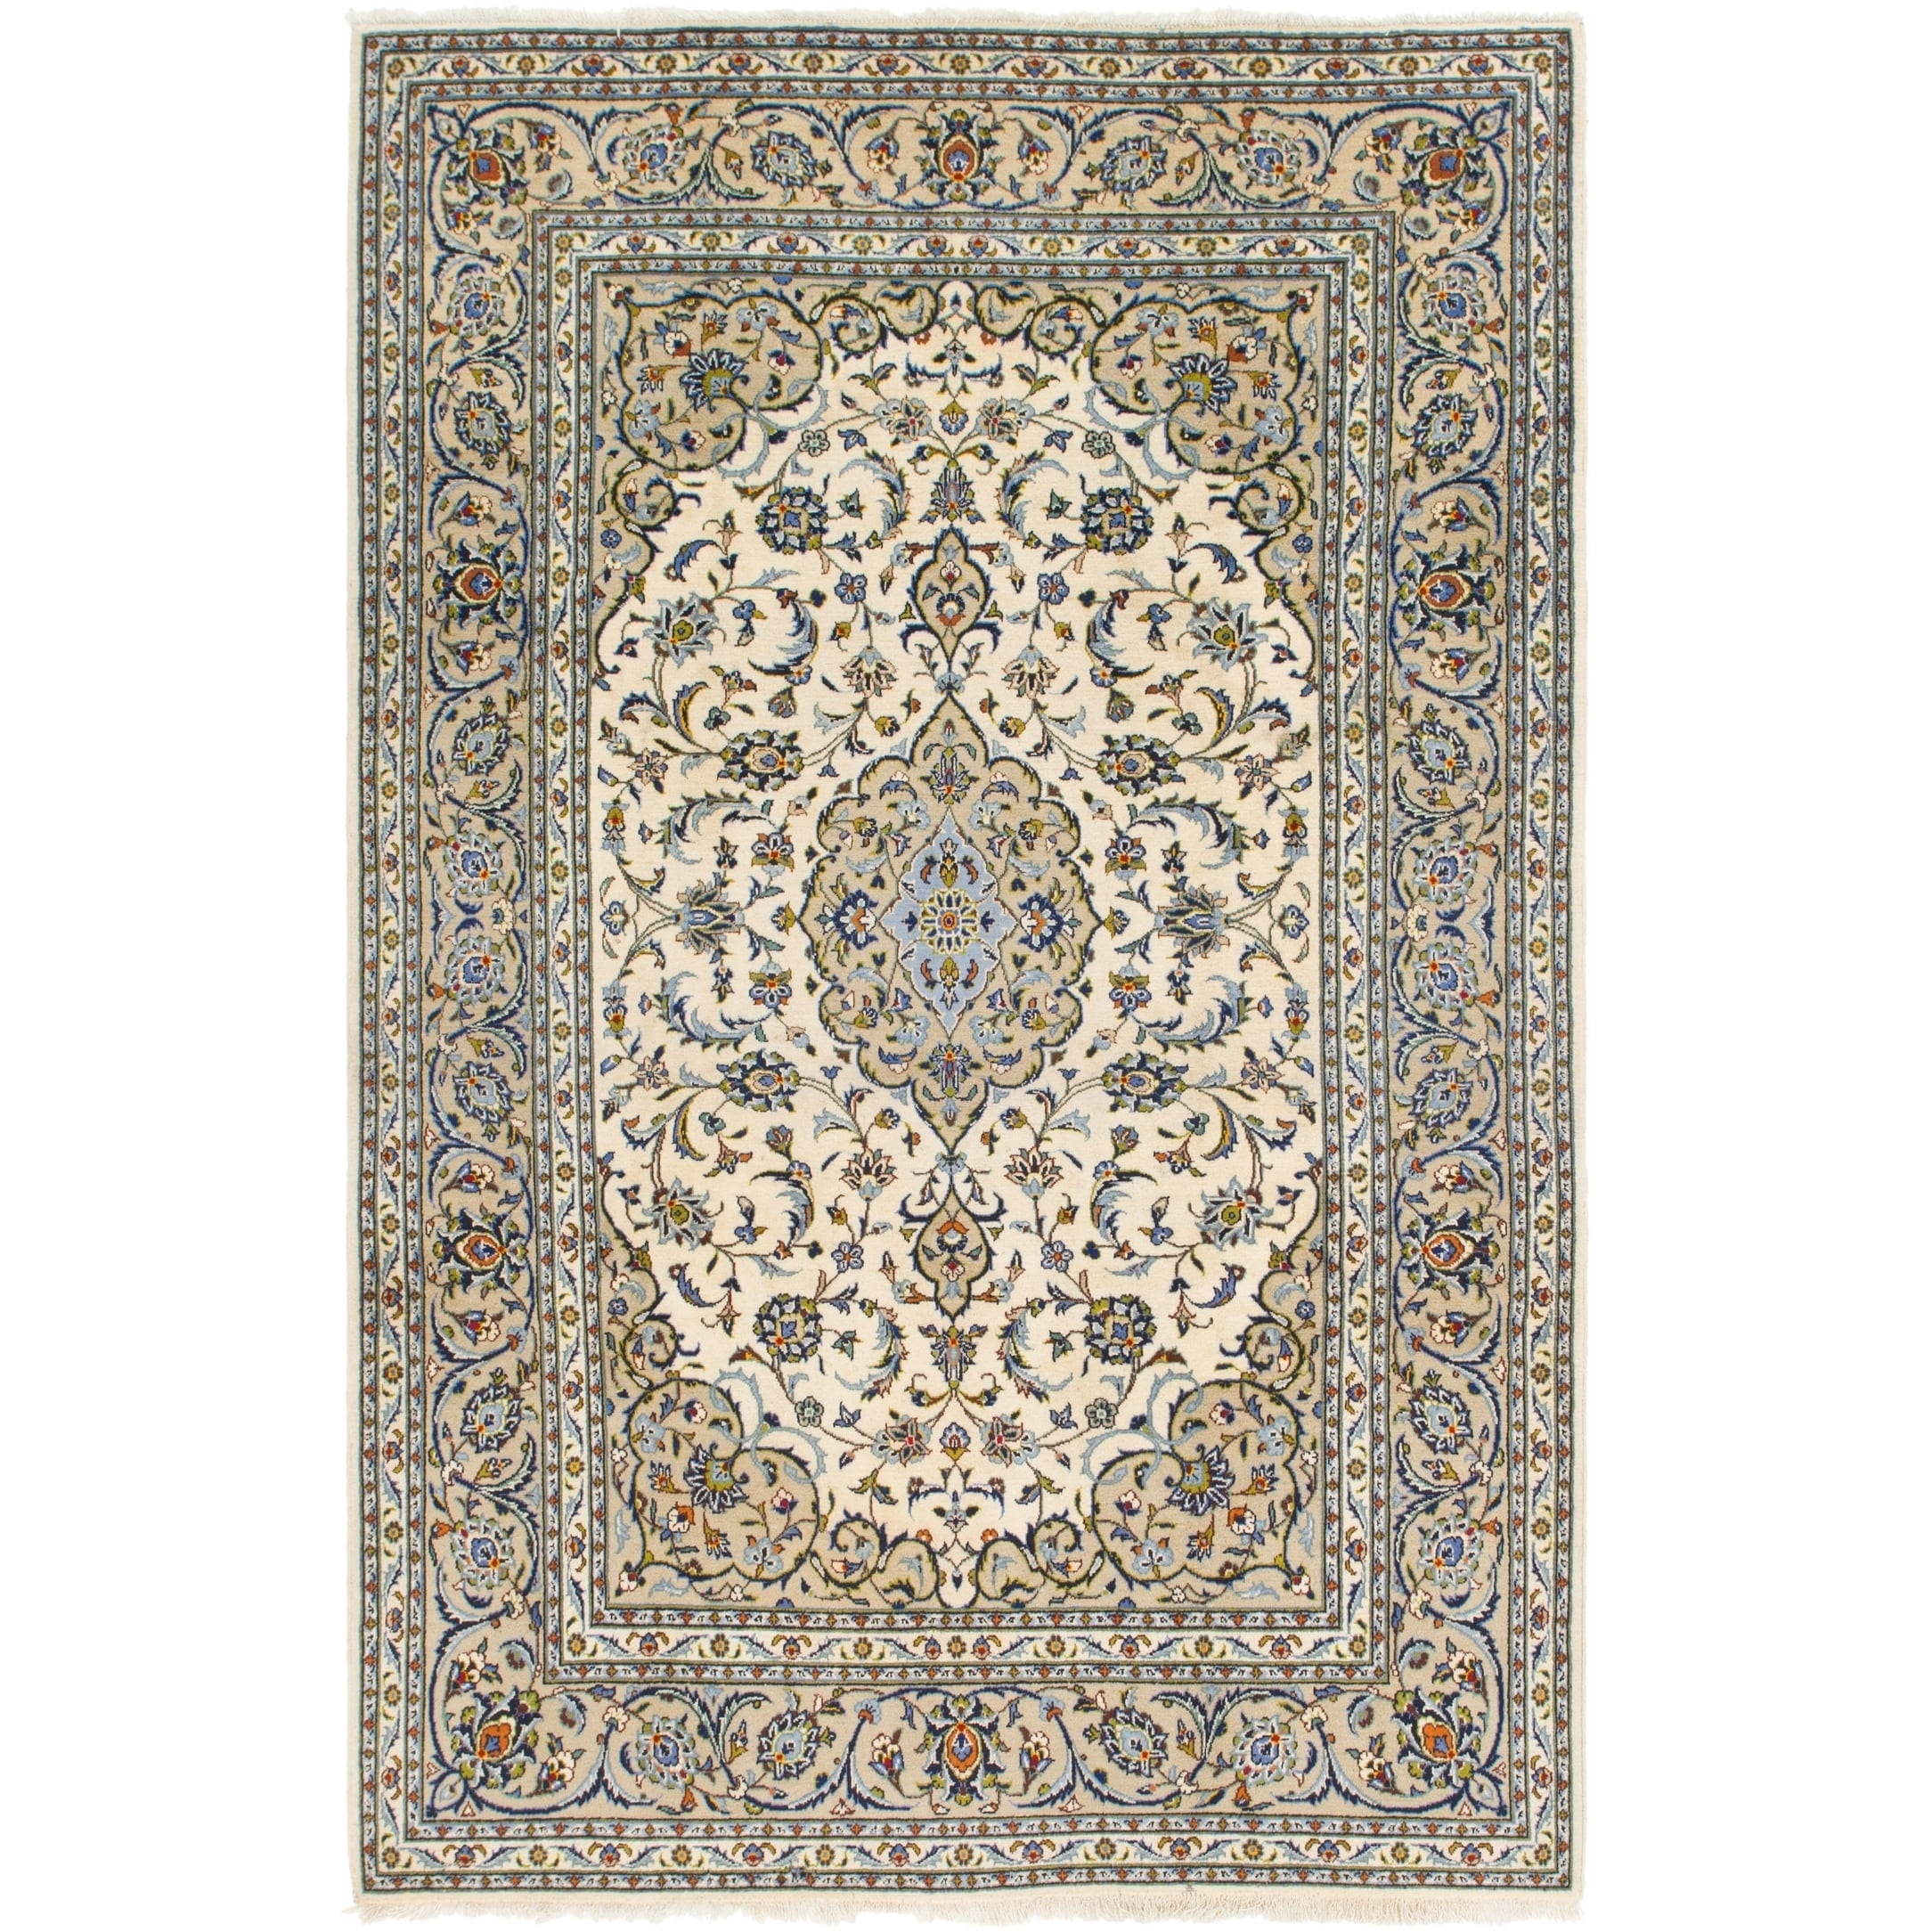 Hand Knotted Kashan Semi Antique Wool Area Rug - 6 4 x 9 8 (Cream - 6 4 x 9 8)